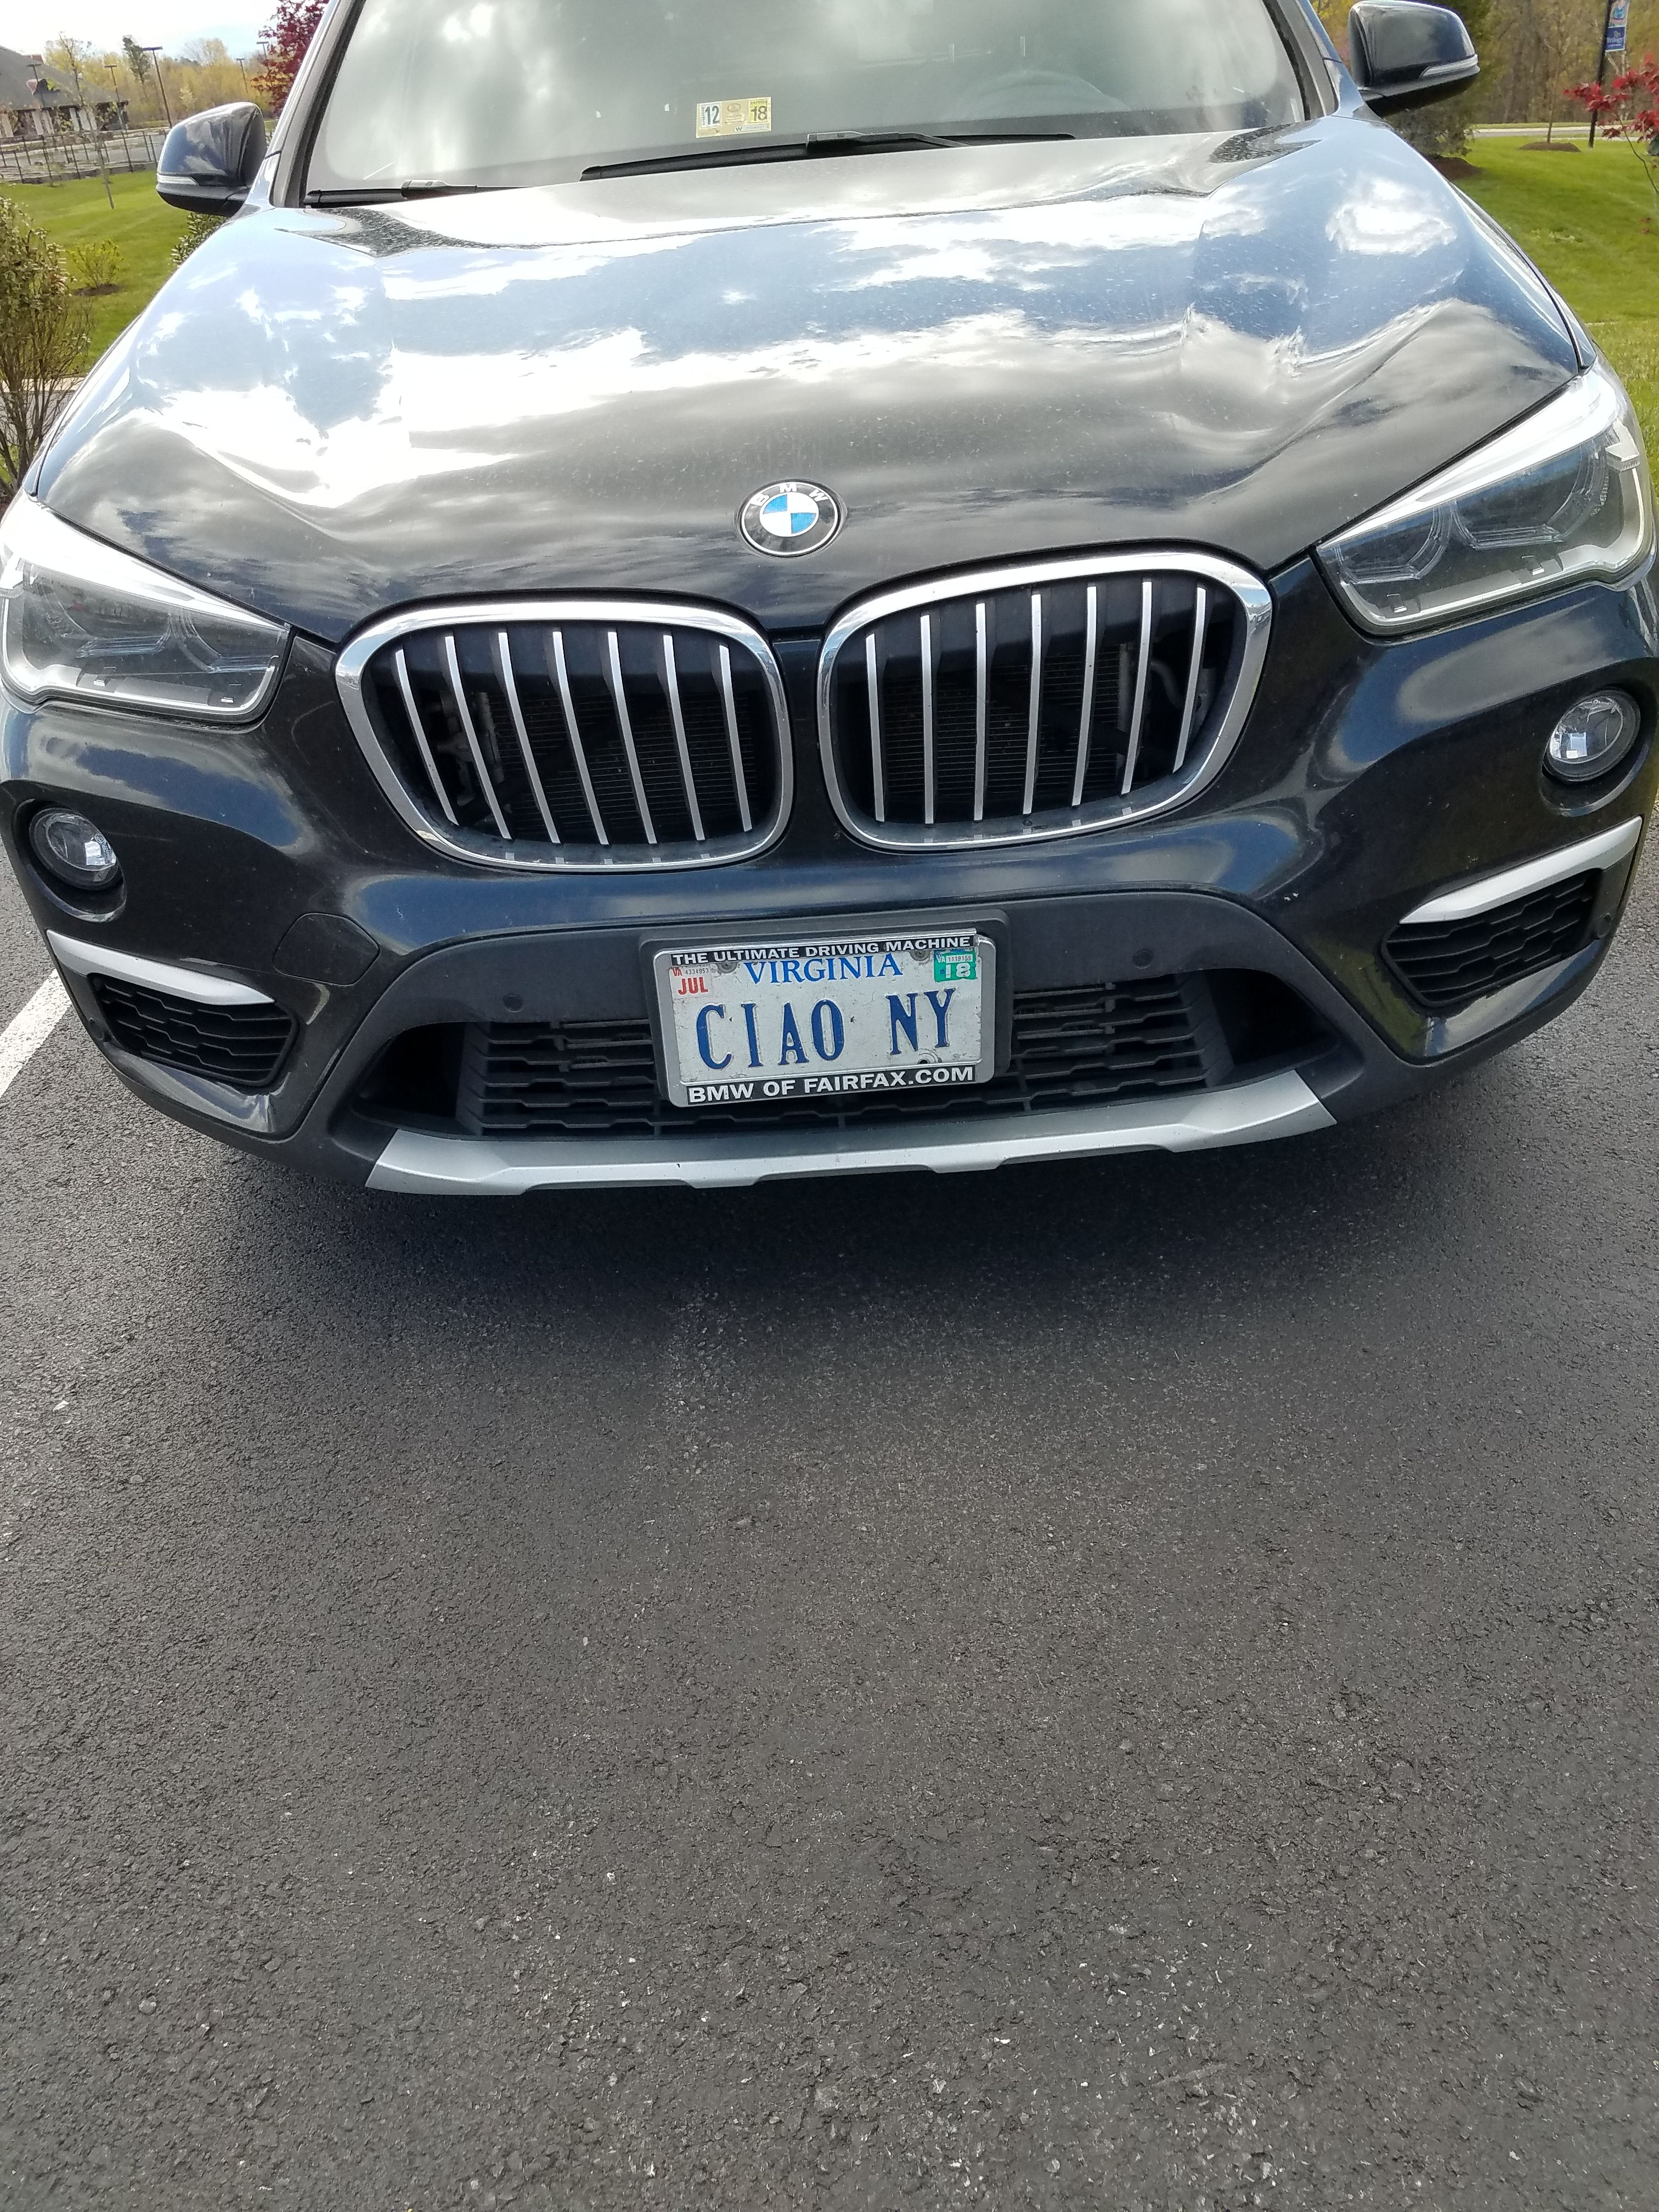 Ciao Ny In Virginia With Images Car License Plates Bmw Car Bmw